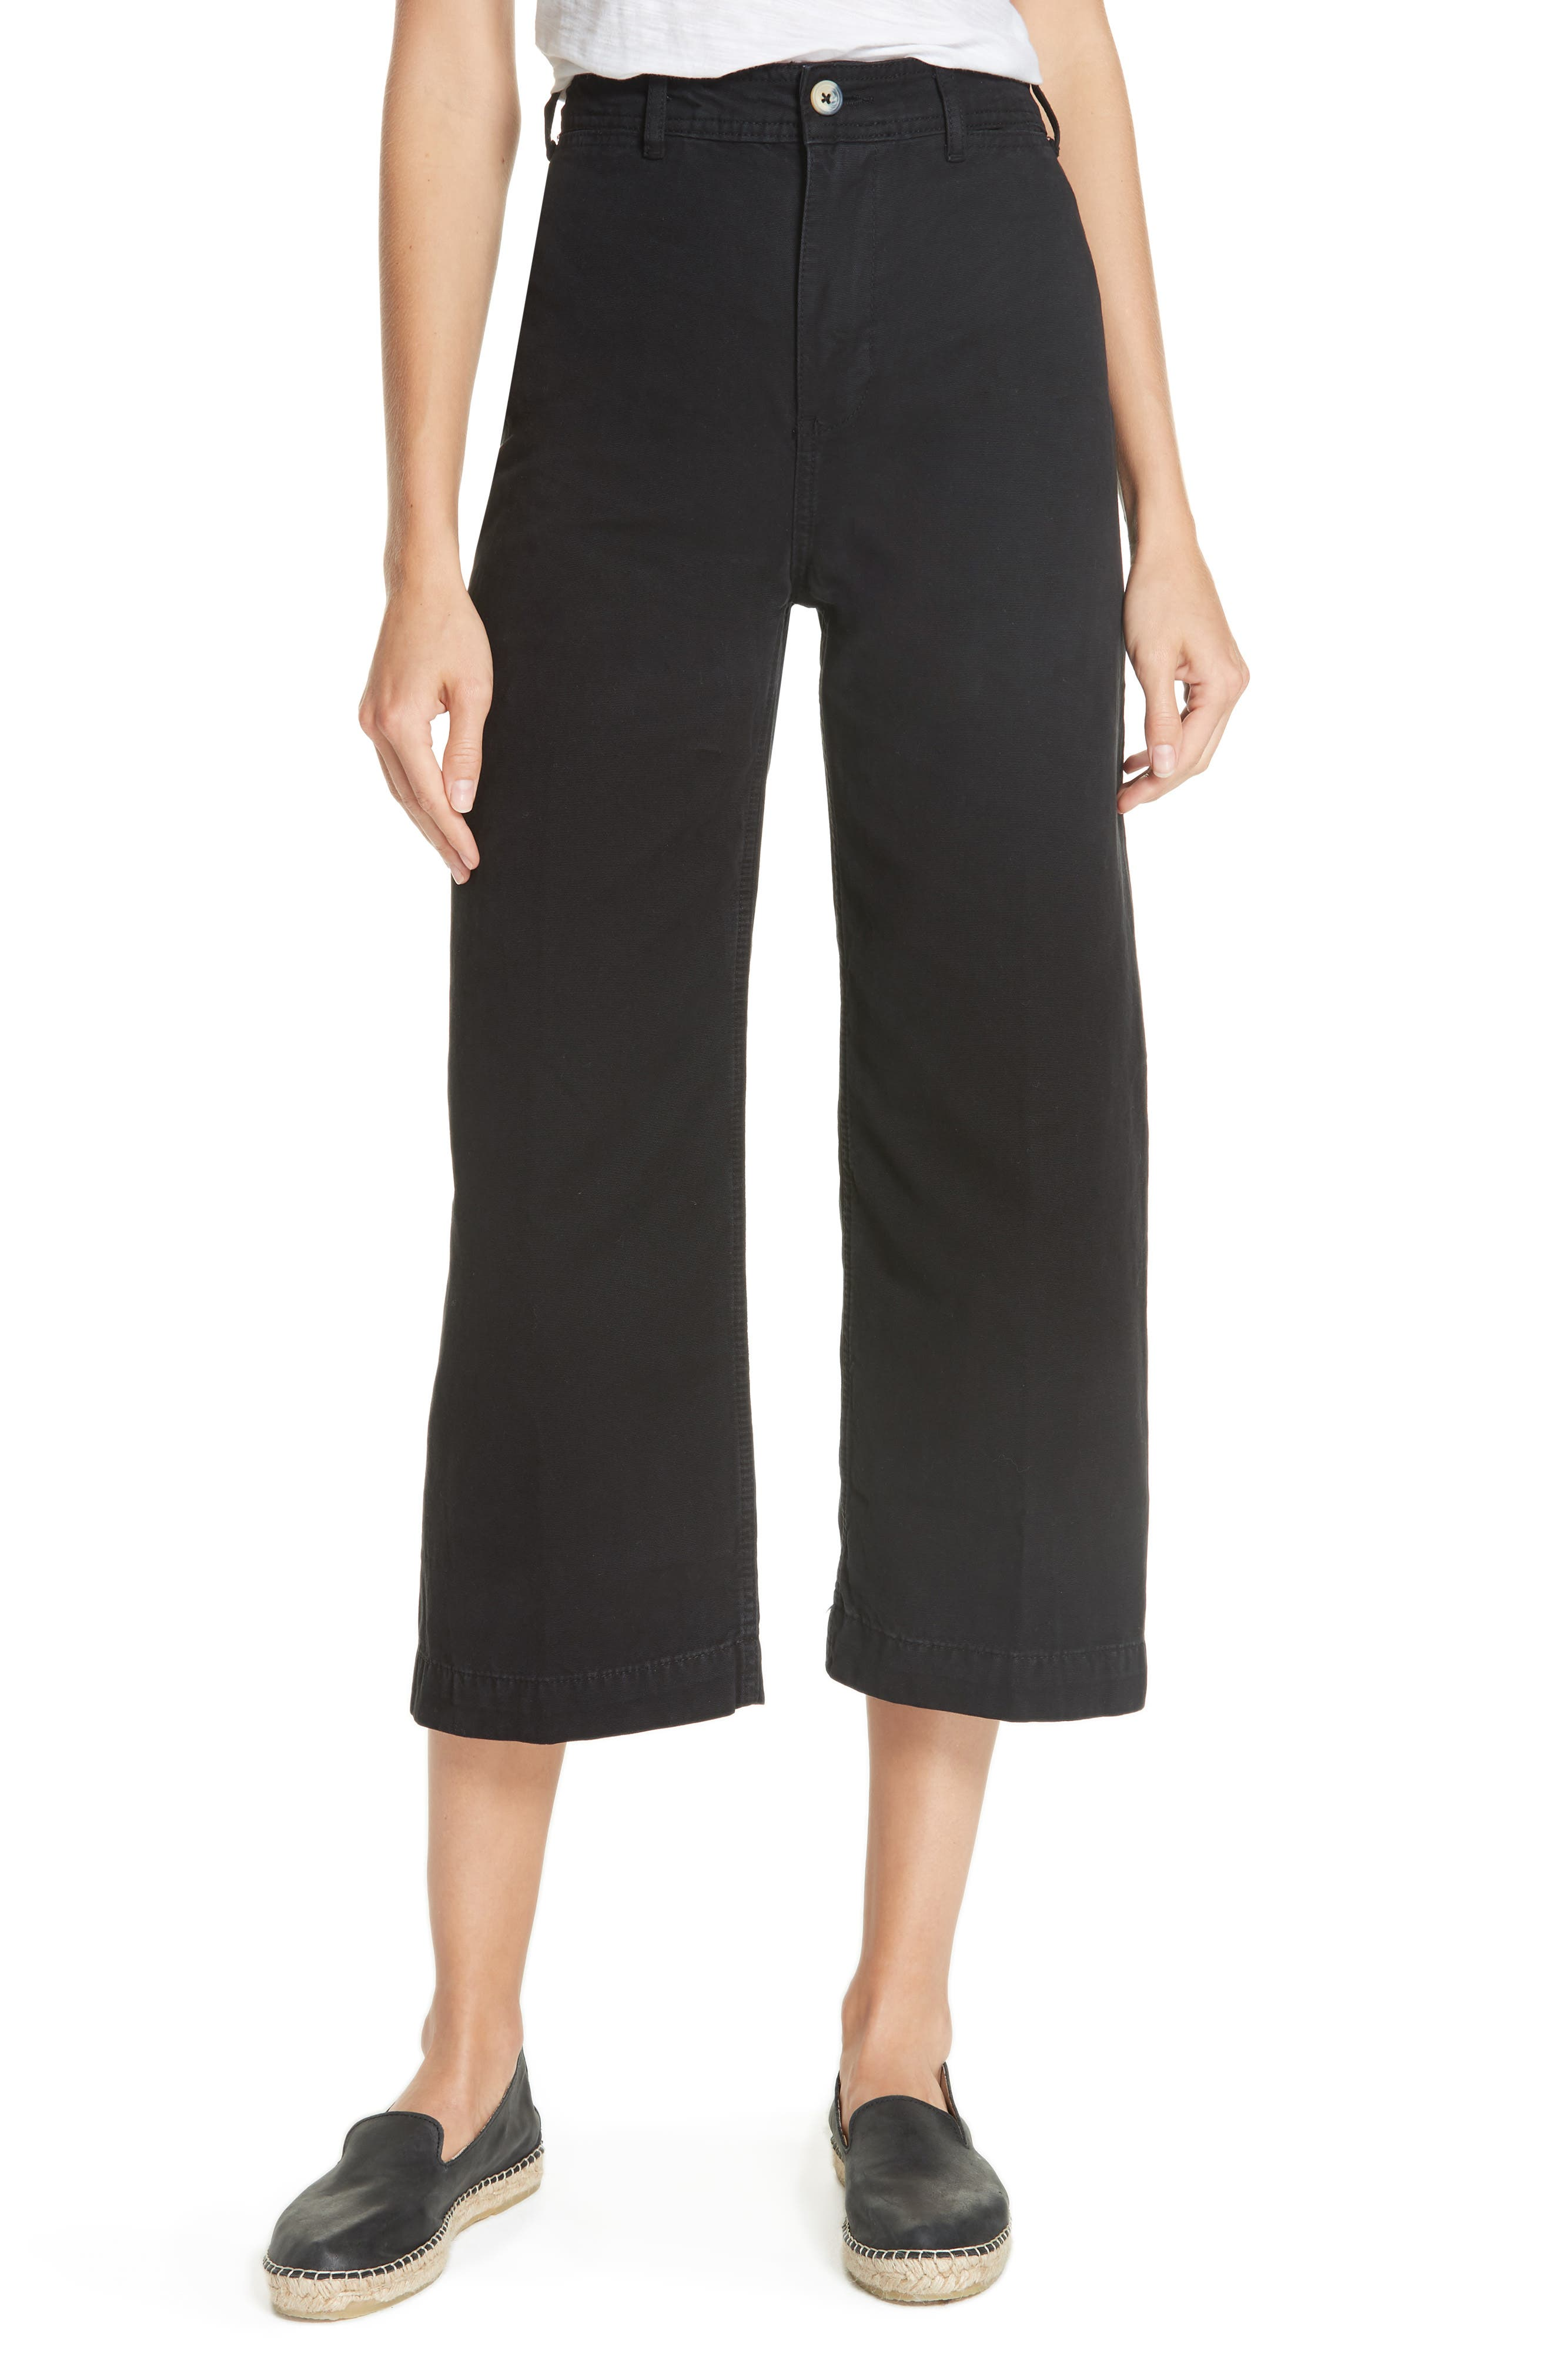 FREE PEOPLE, We the Free by Free People Patti Crop Cotton Pants, Main thumbnail 1, color, 001